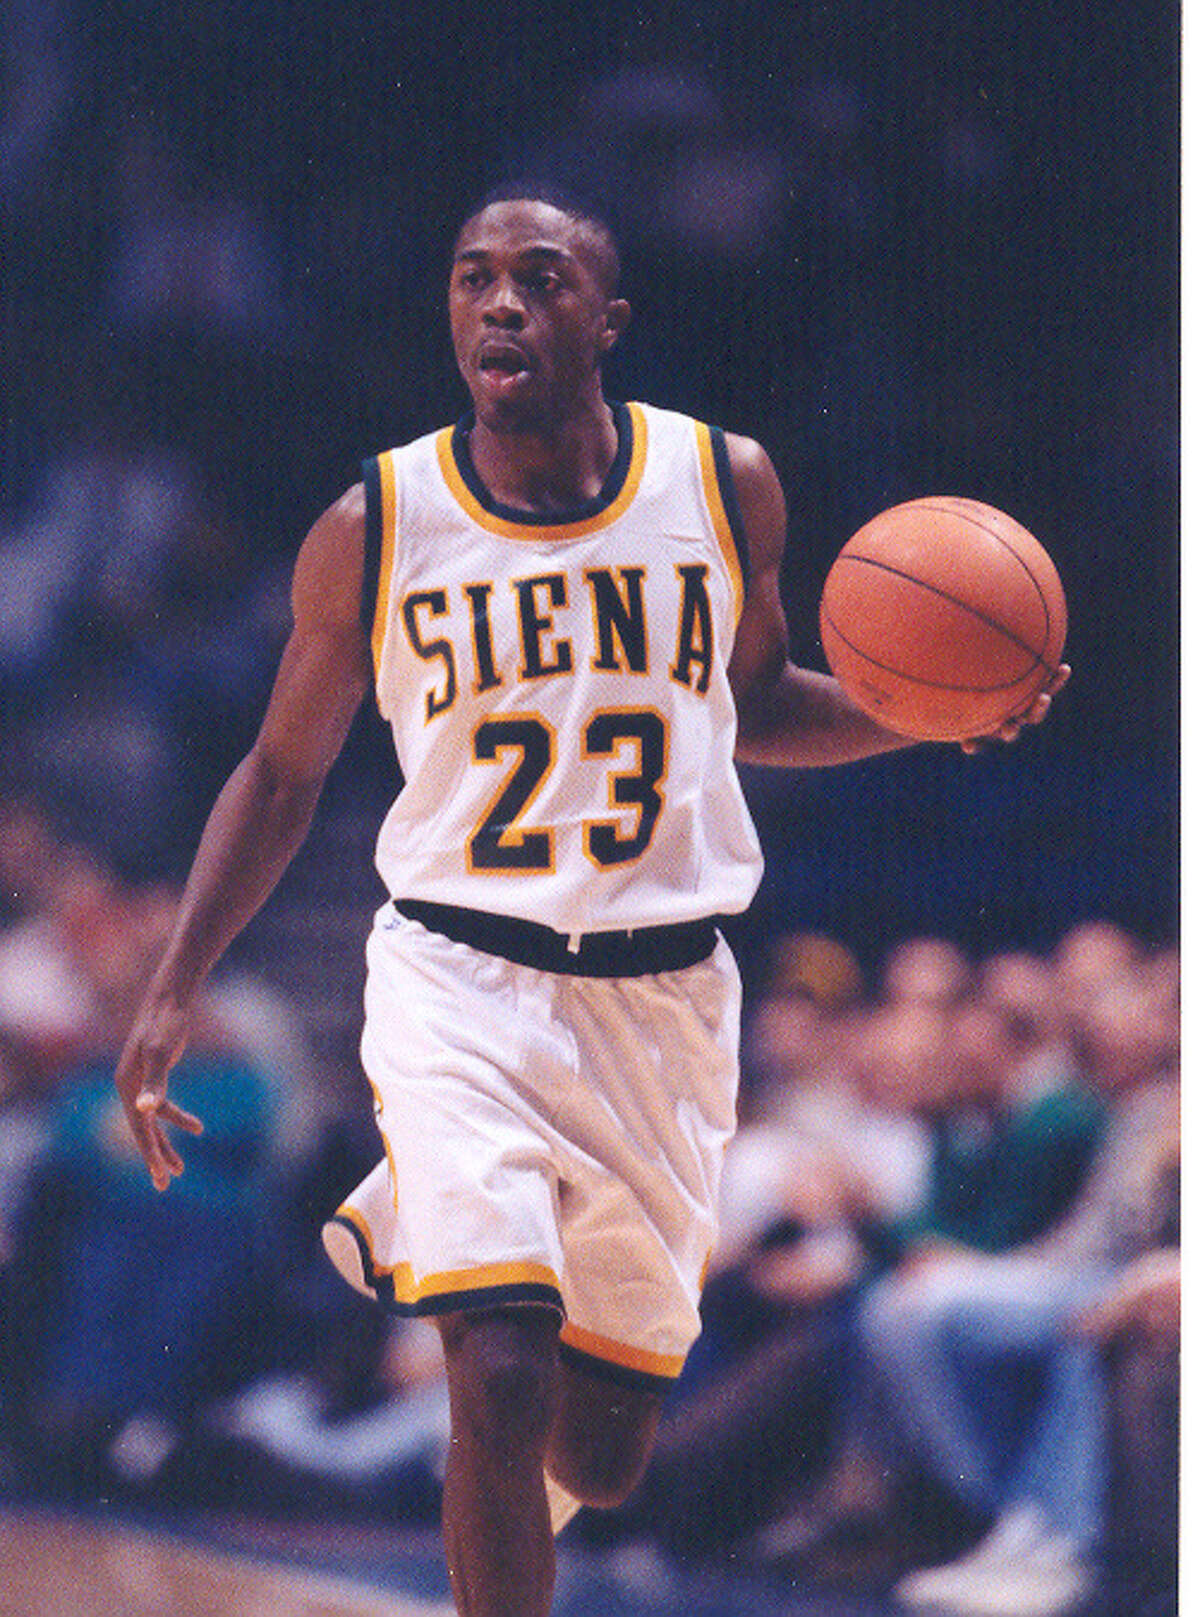 COURTESY PHOTO SIENA COLLEGE -- Doremus Bennerman: During the 1993-94 season, Bennerman averaged 26 points - the most of any player in Siena history. He's second only to Brown on the all-time scoring list.